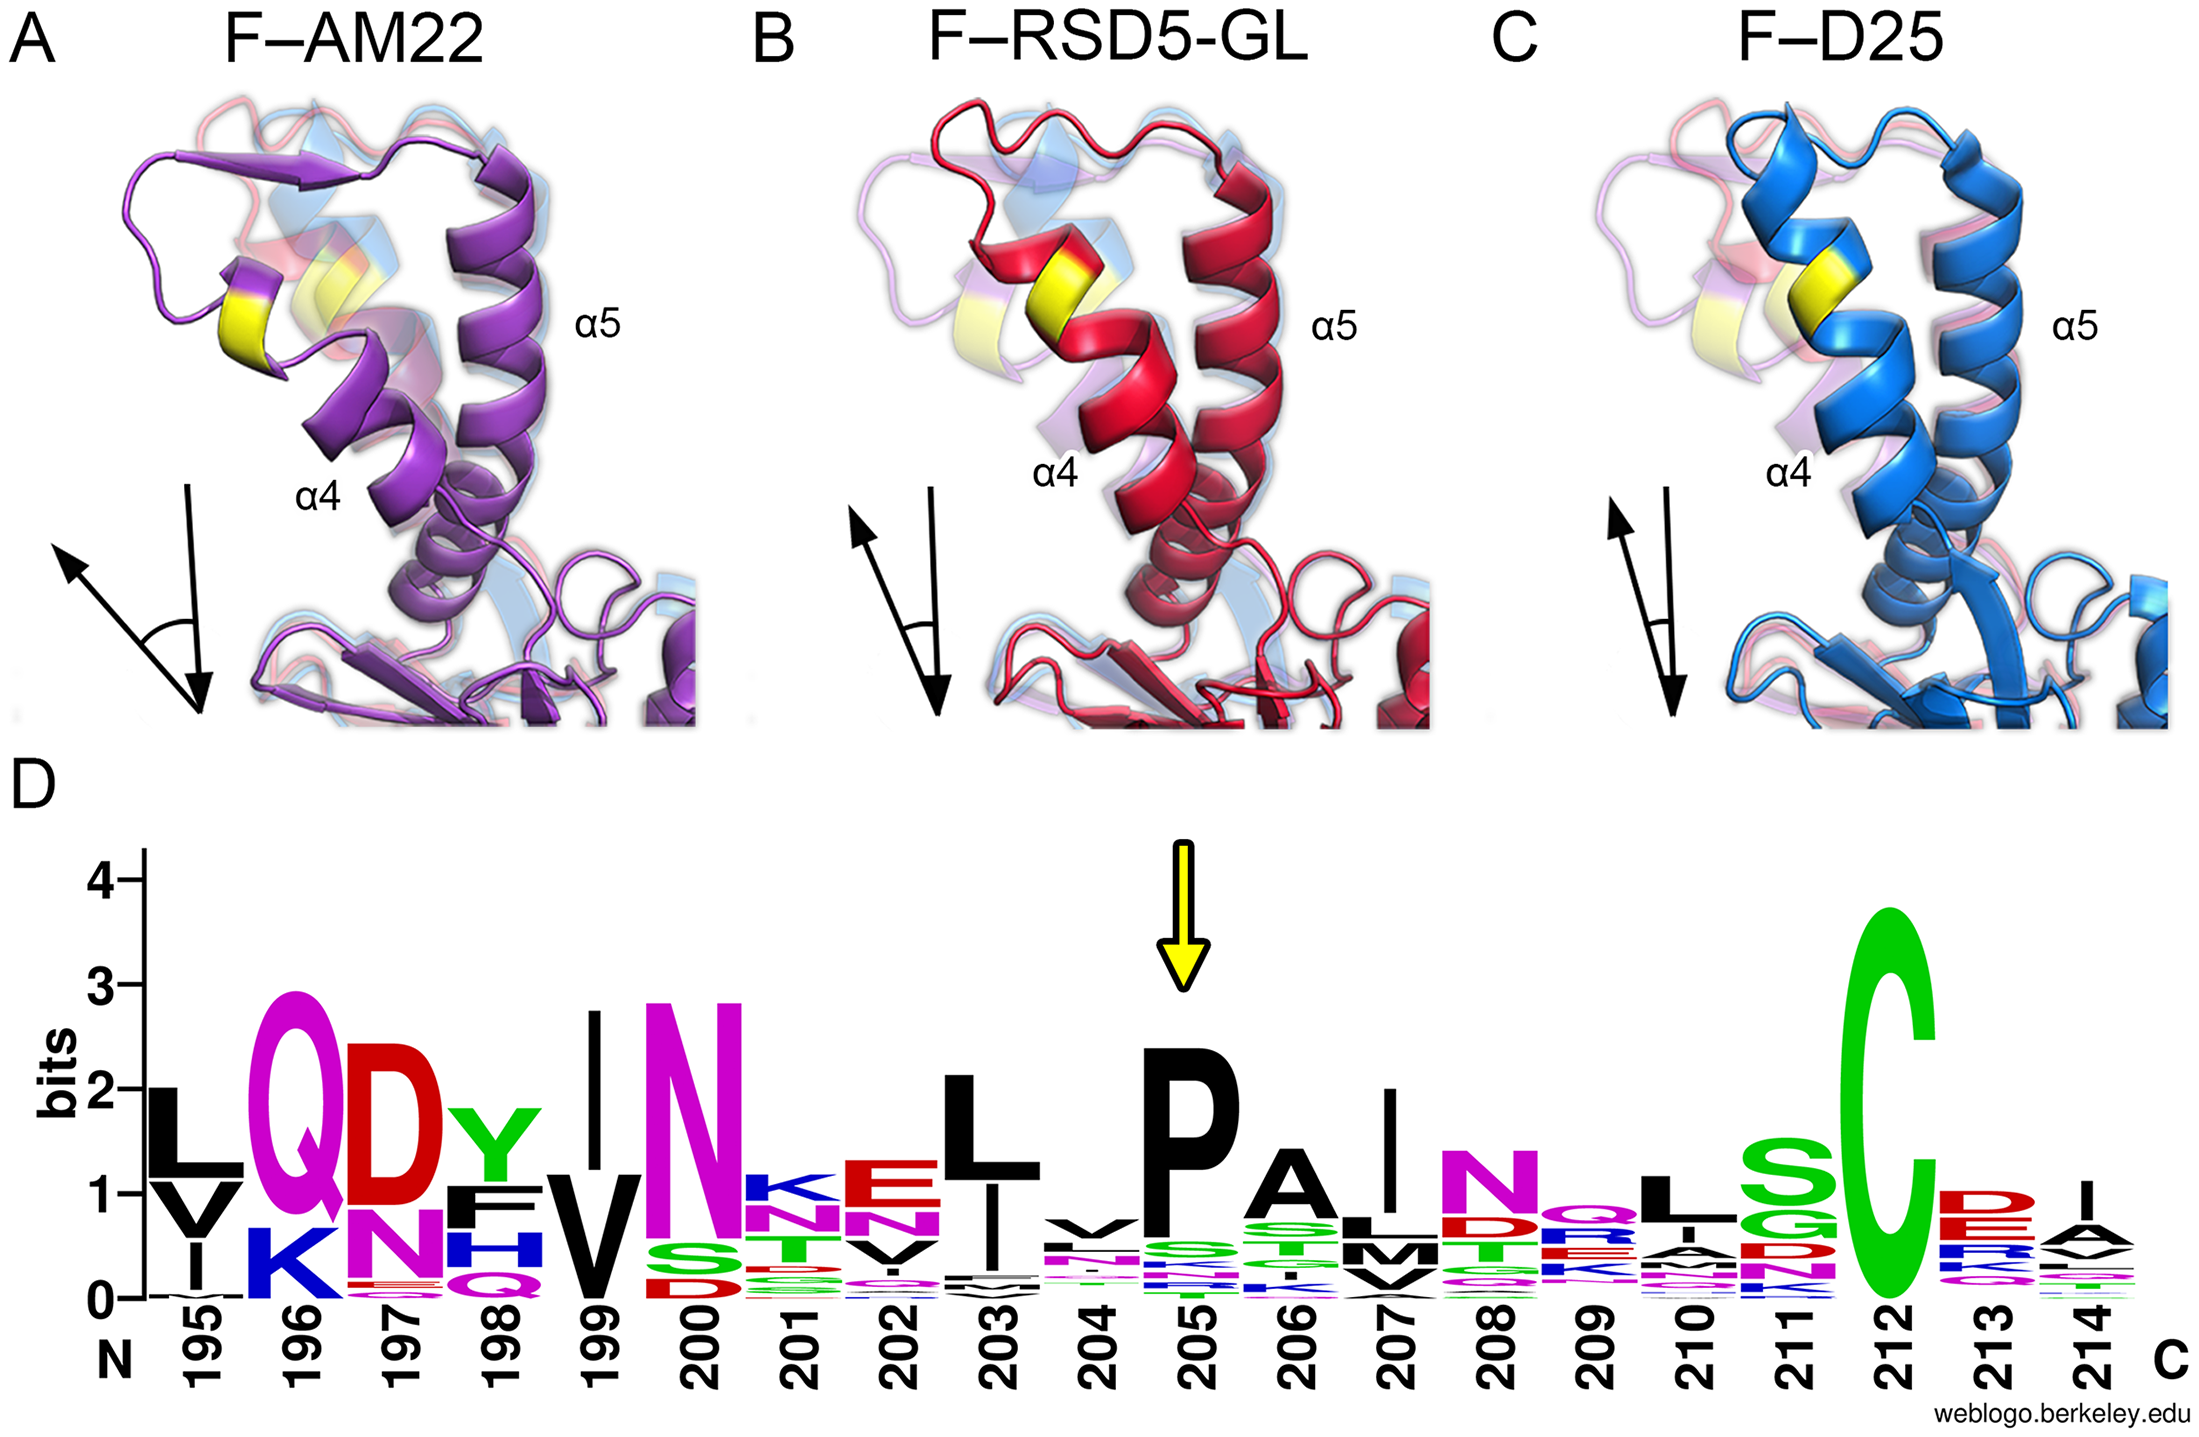 Alternative conformations of a major antigenic site on RSV F.